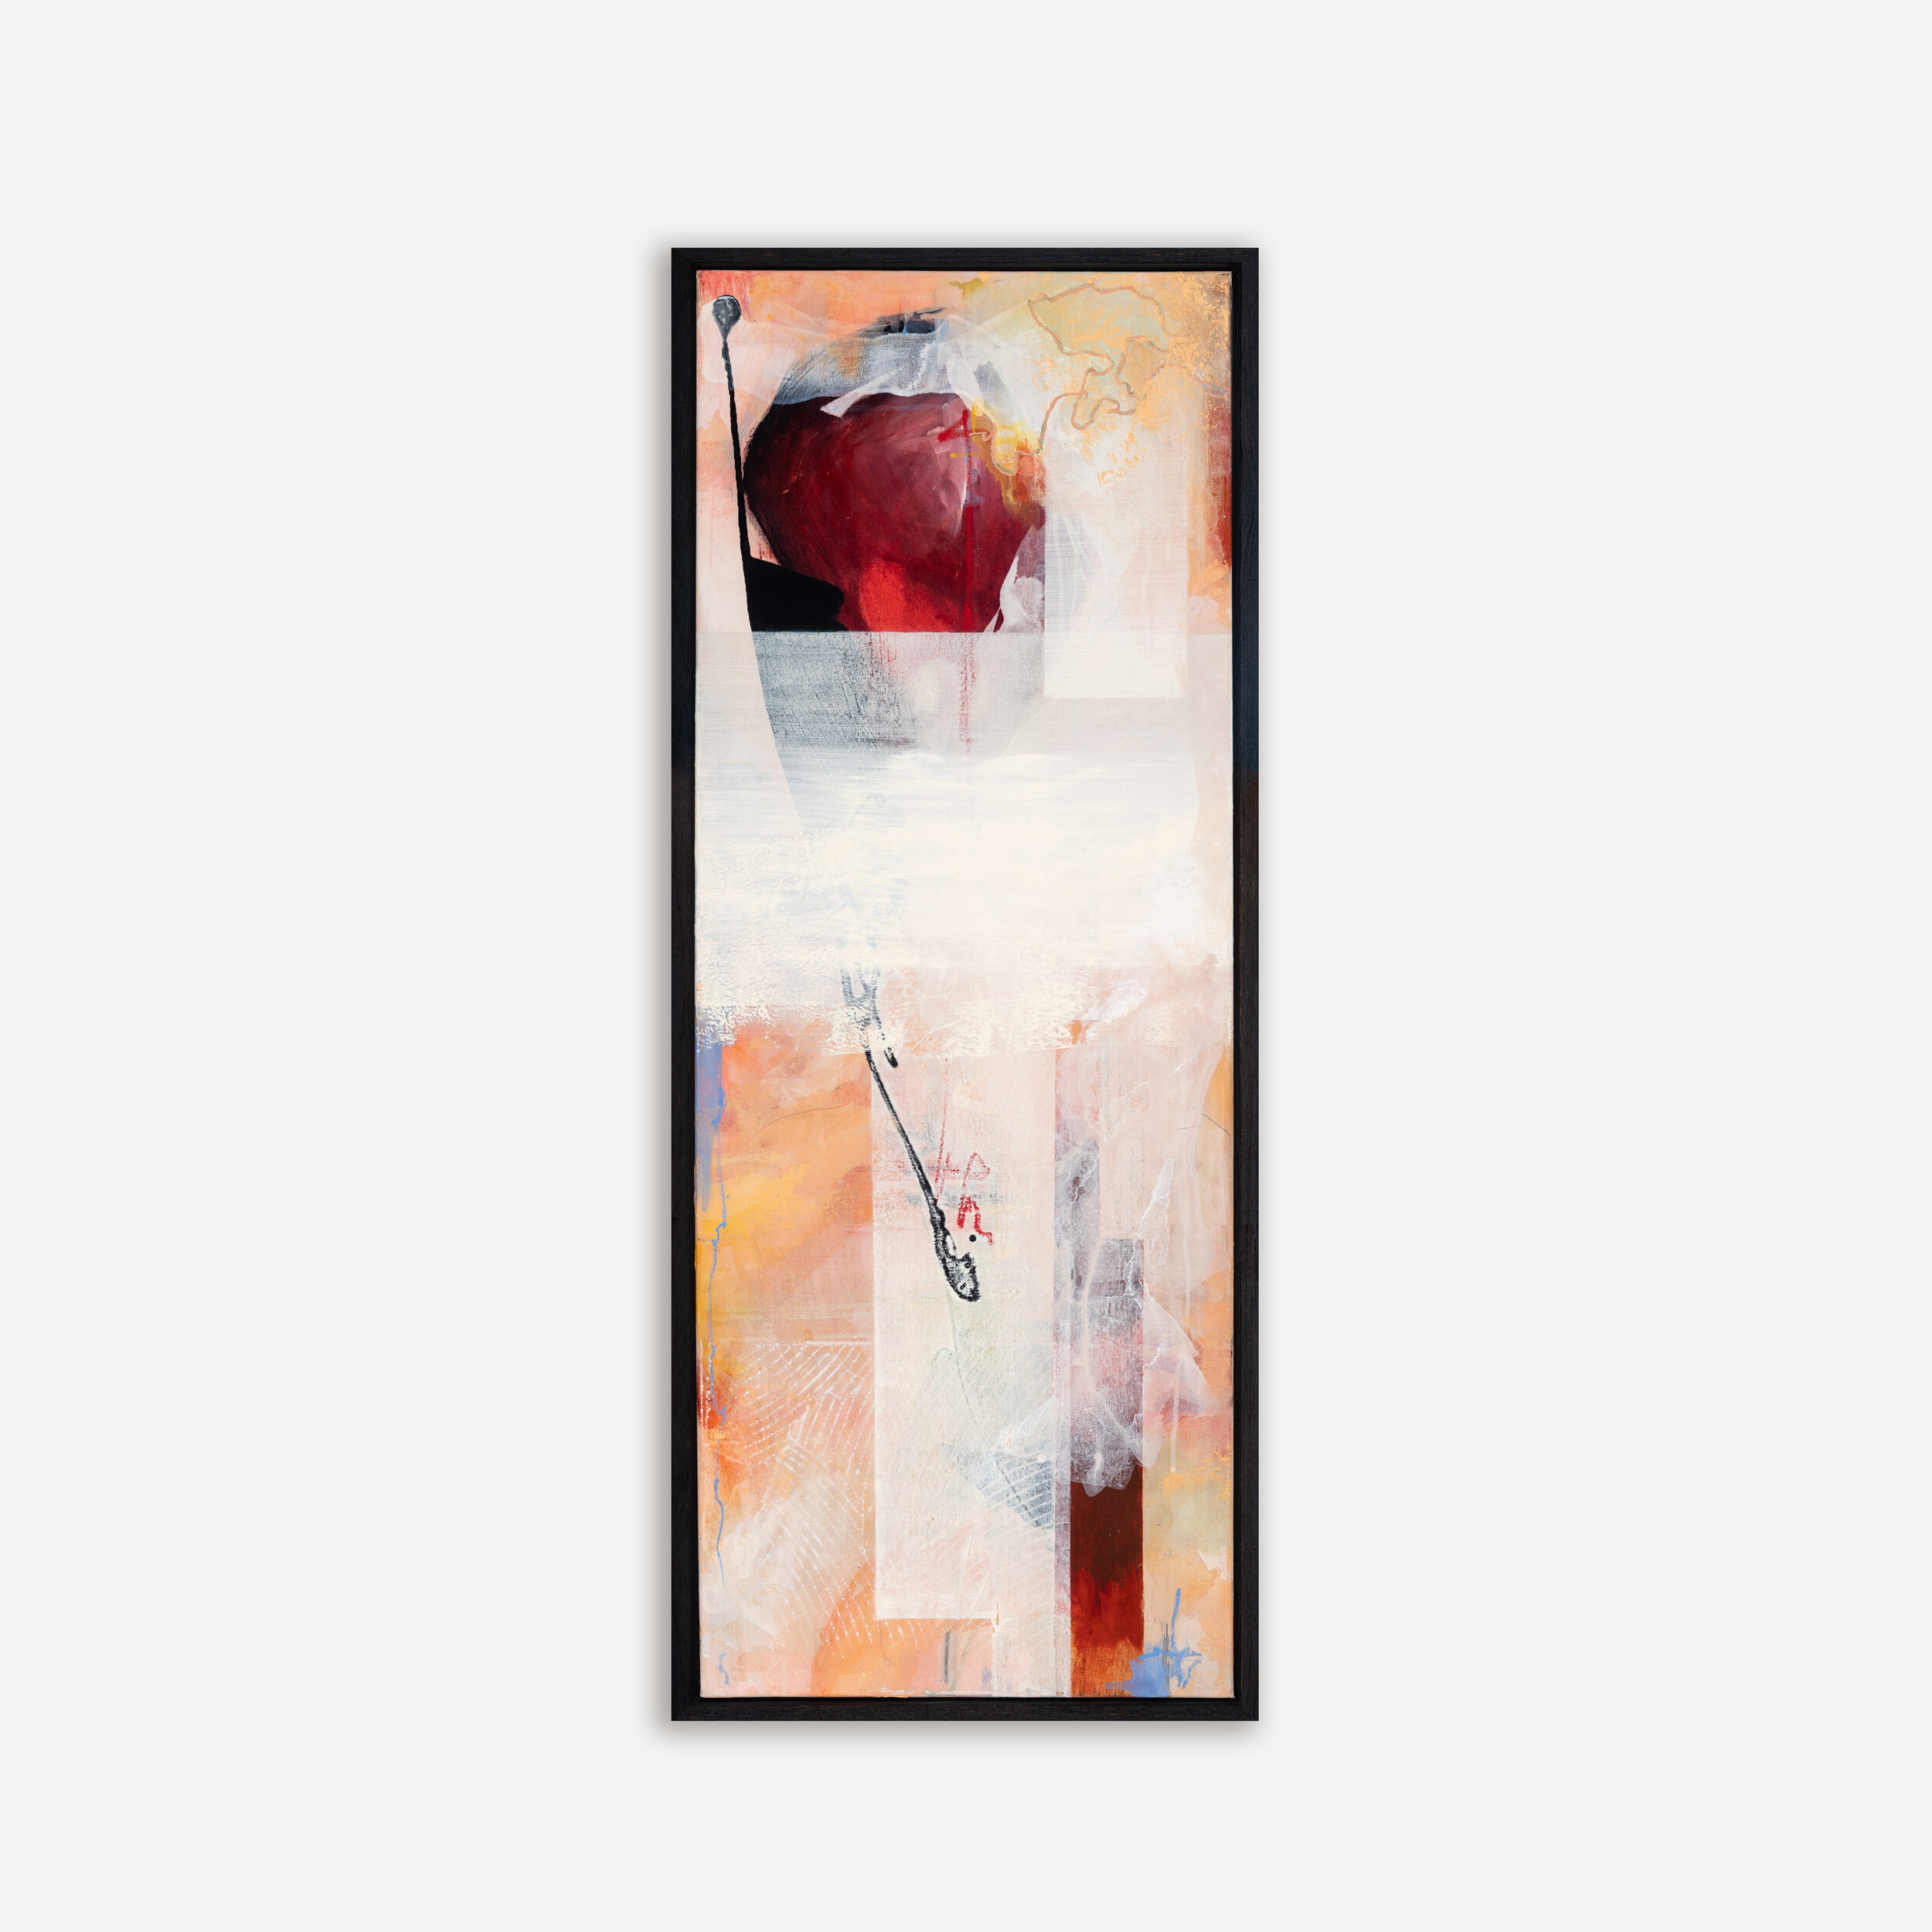 W45 x H120cm image size | acrylic mixed media on canvas in open grain, charcoal floating frame